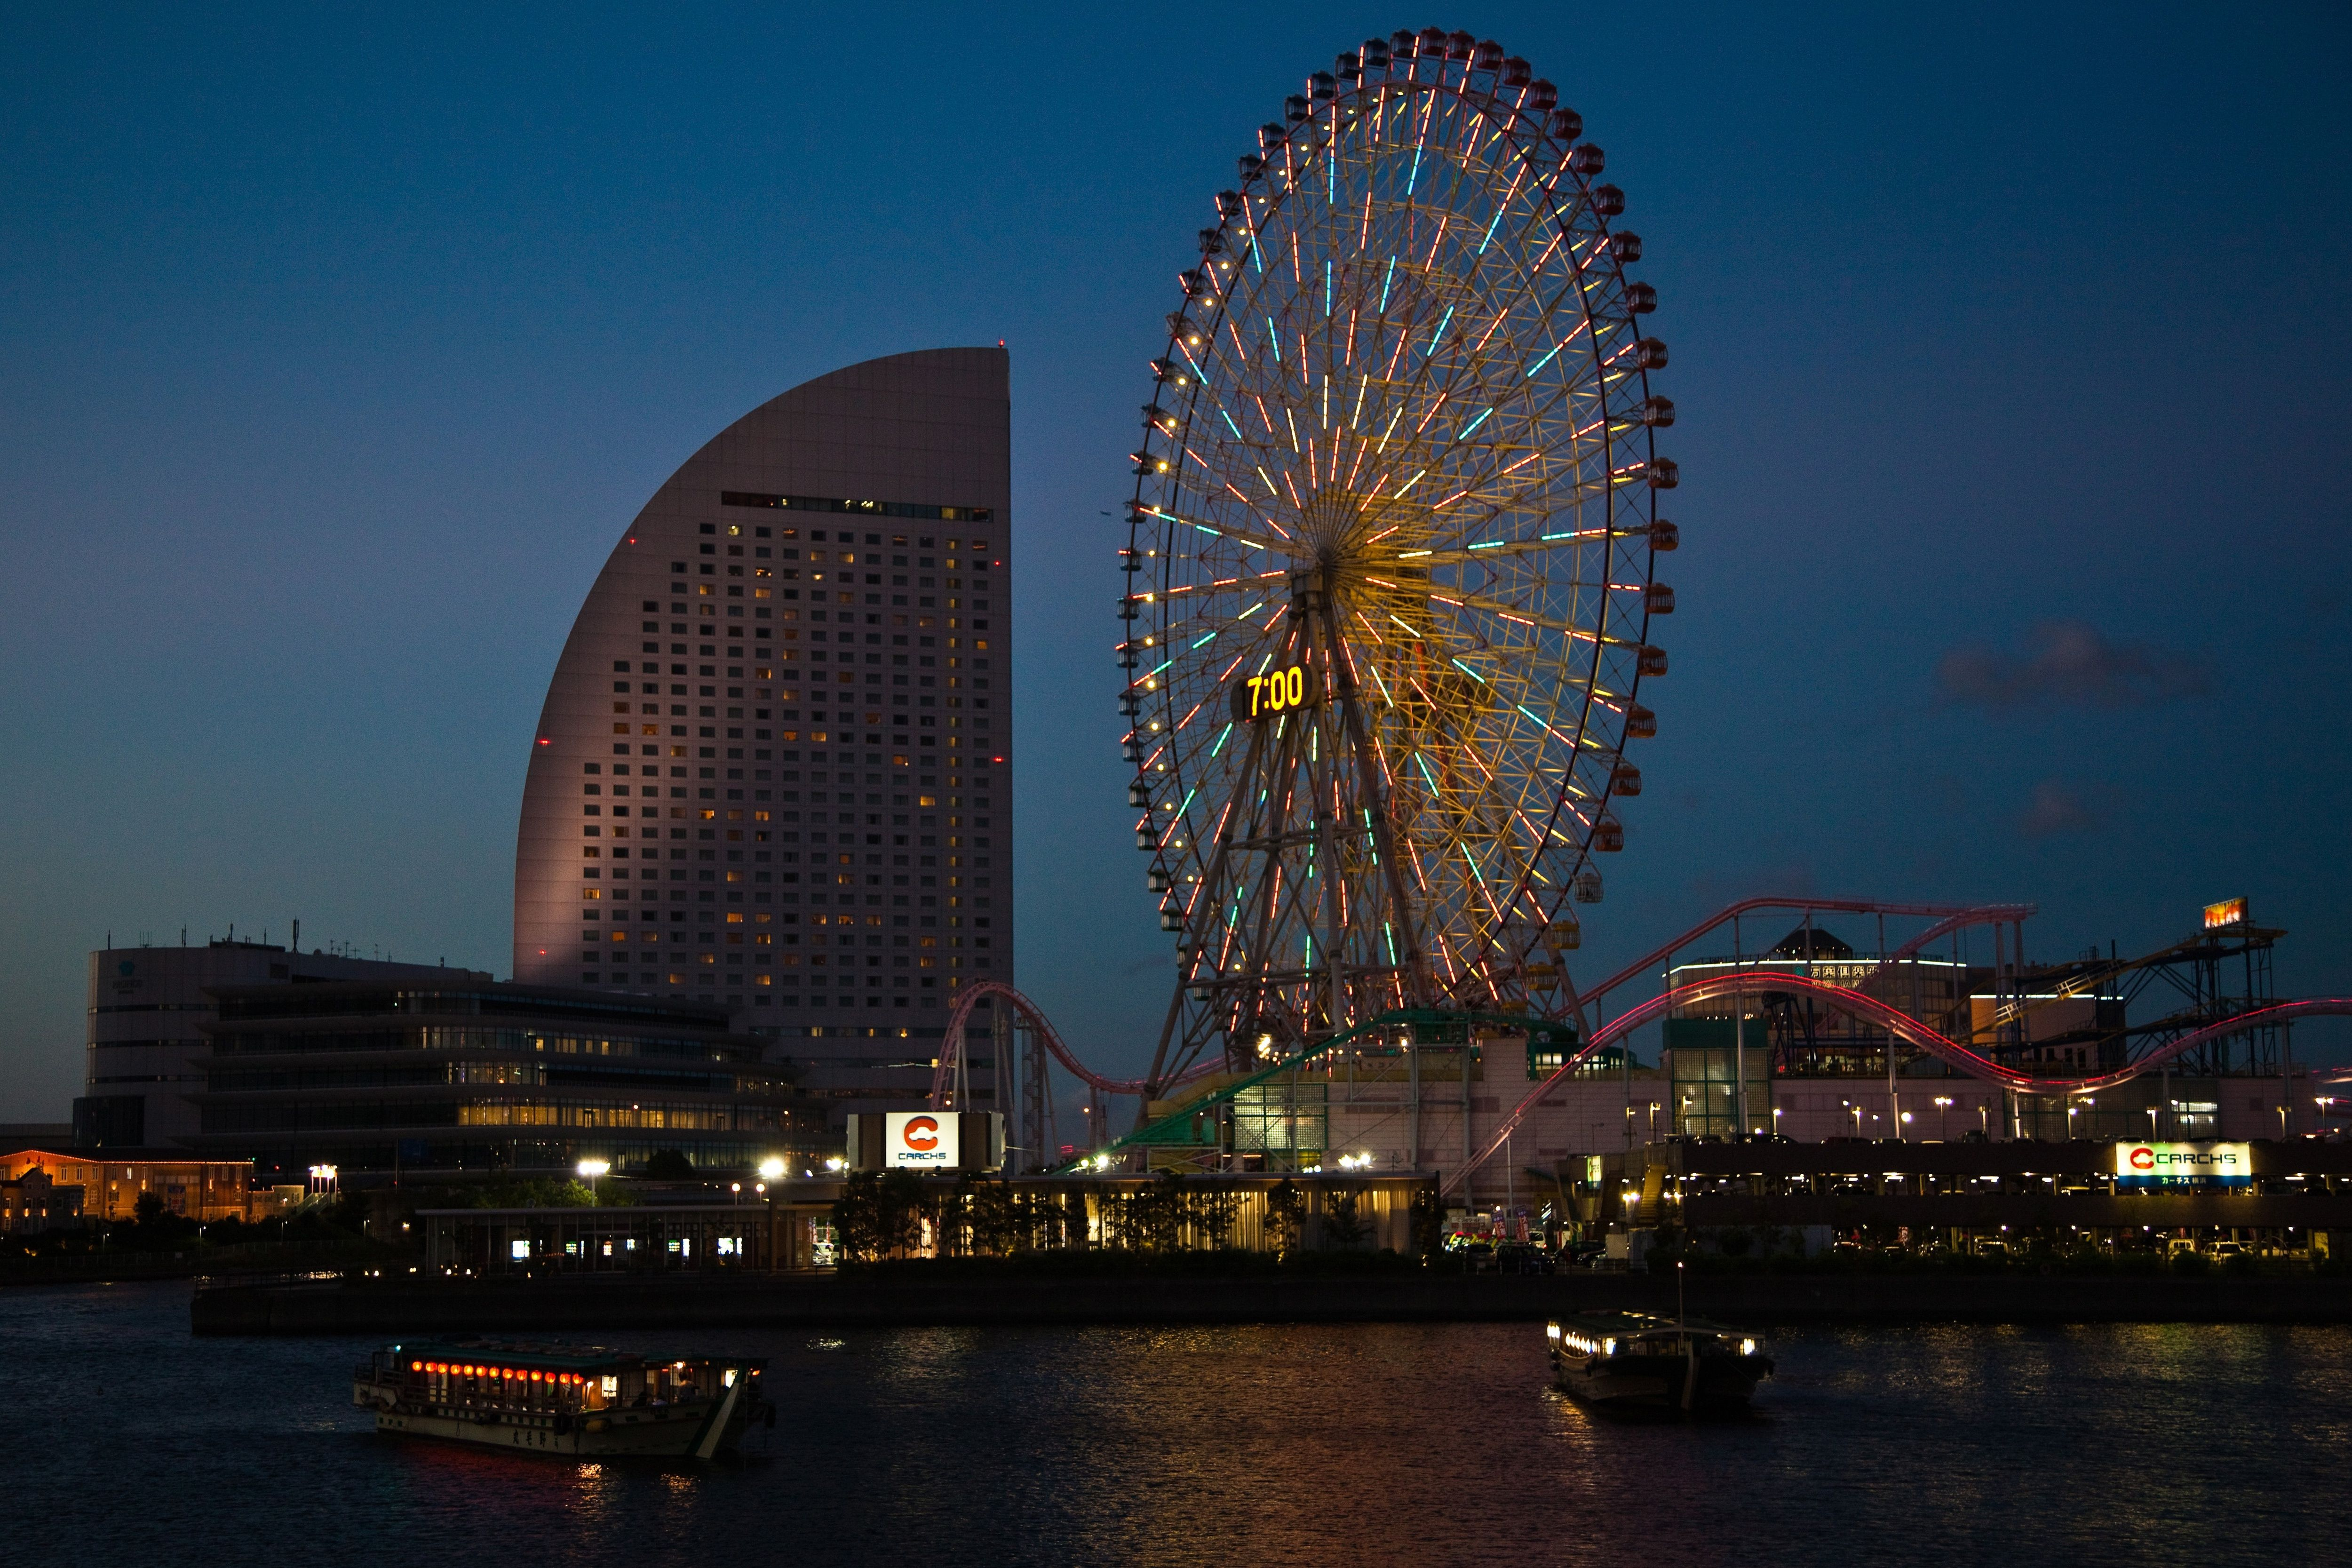 Minato Mirai, which means 'Harbor Future', is built on...